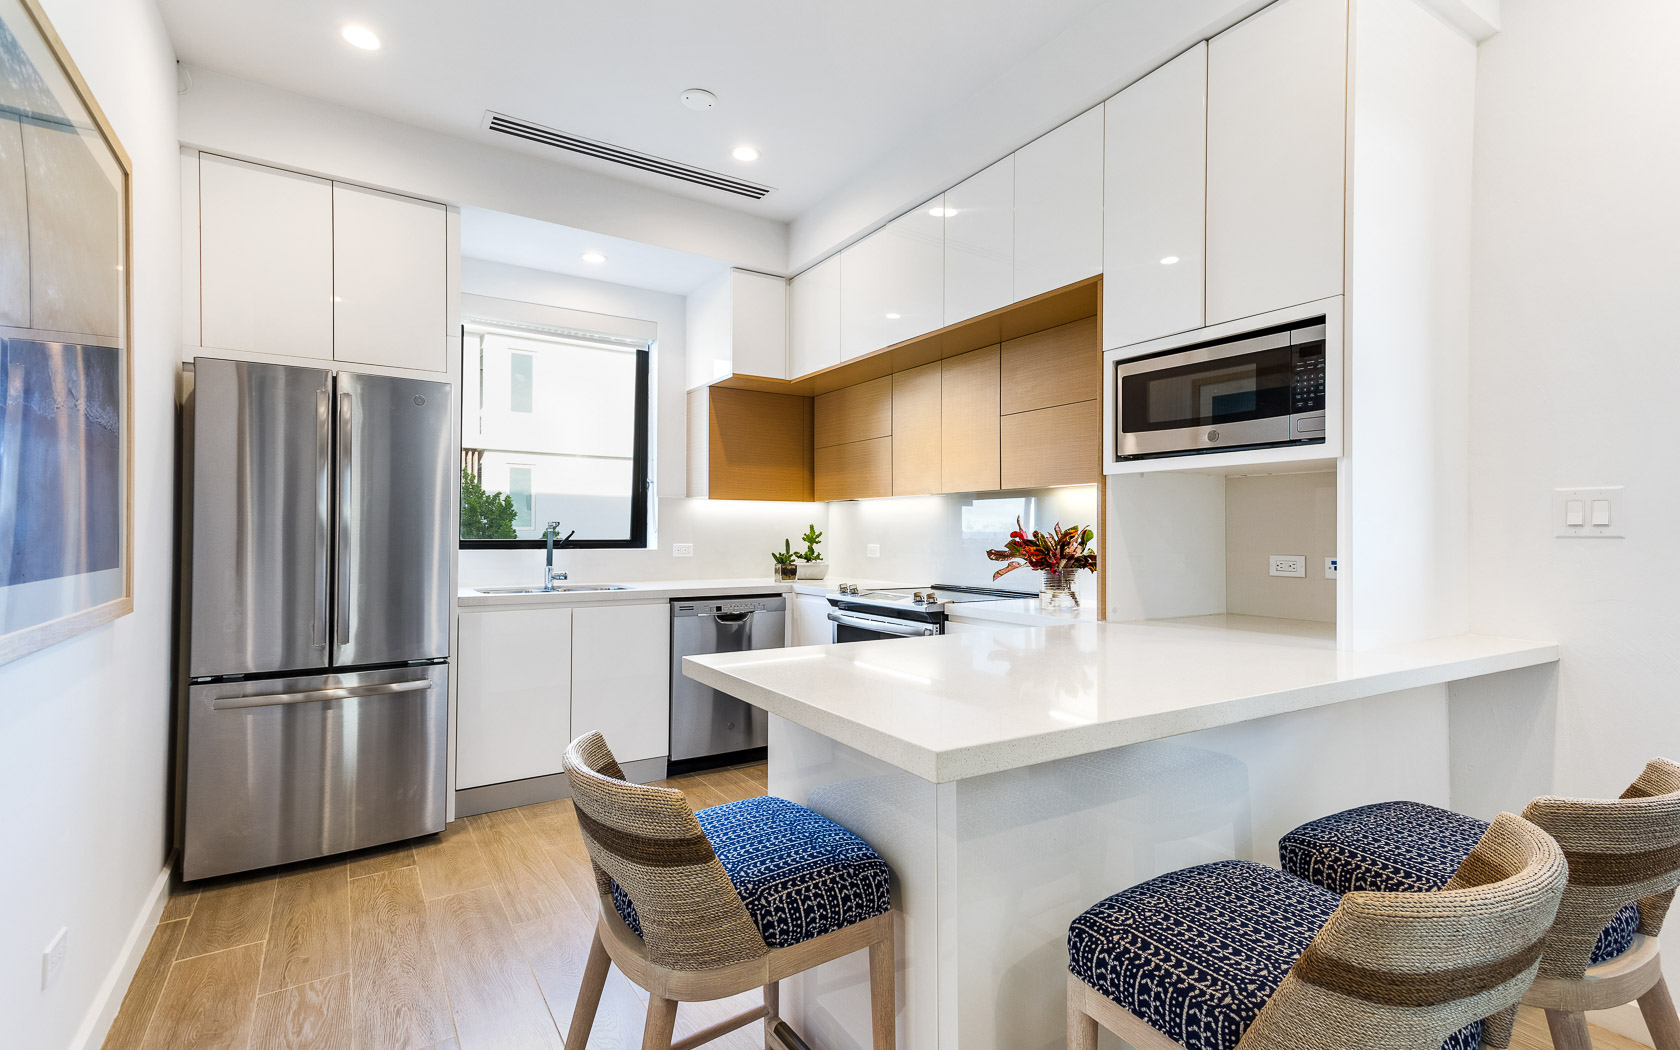 kitchen with white countertops and connected island with barstool seating